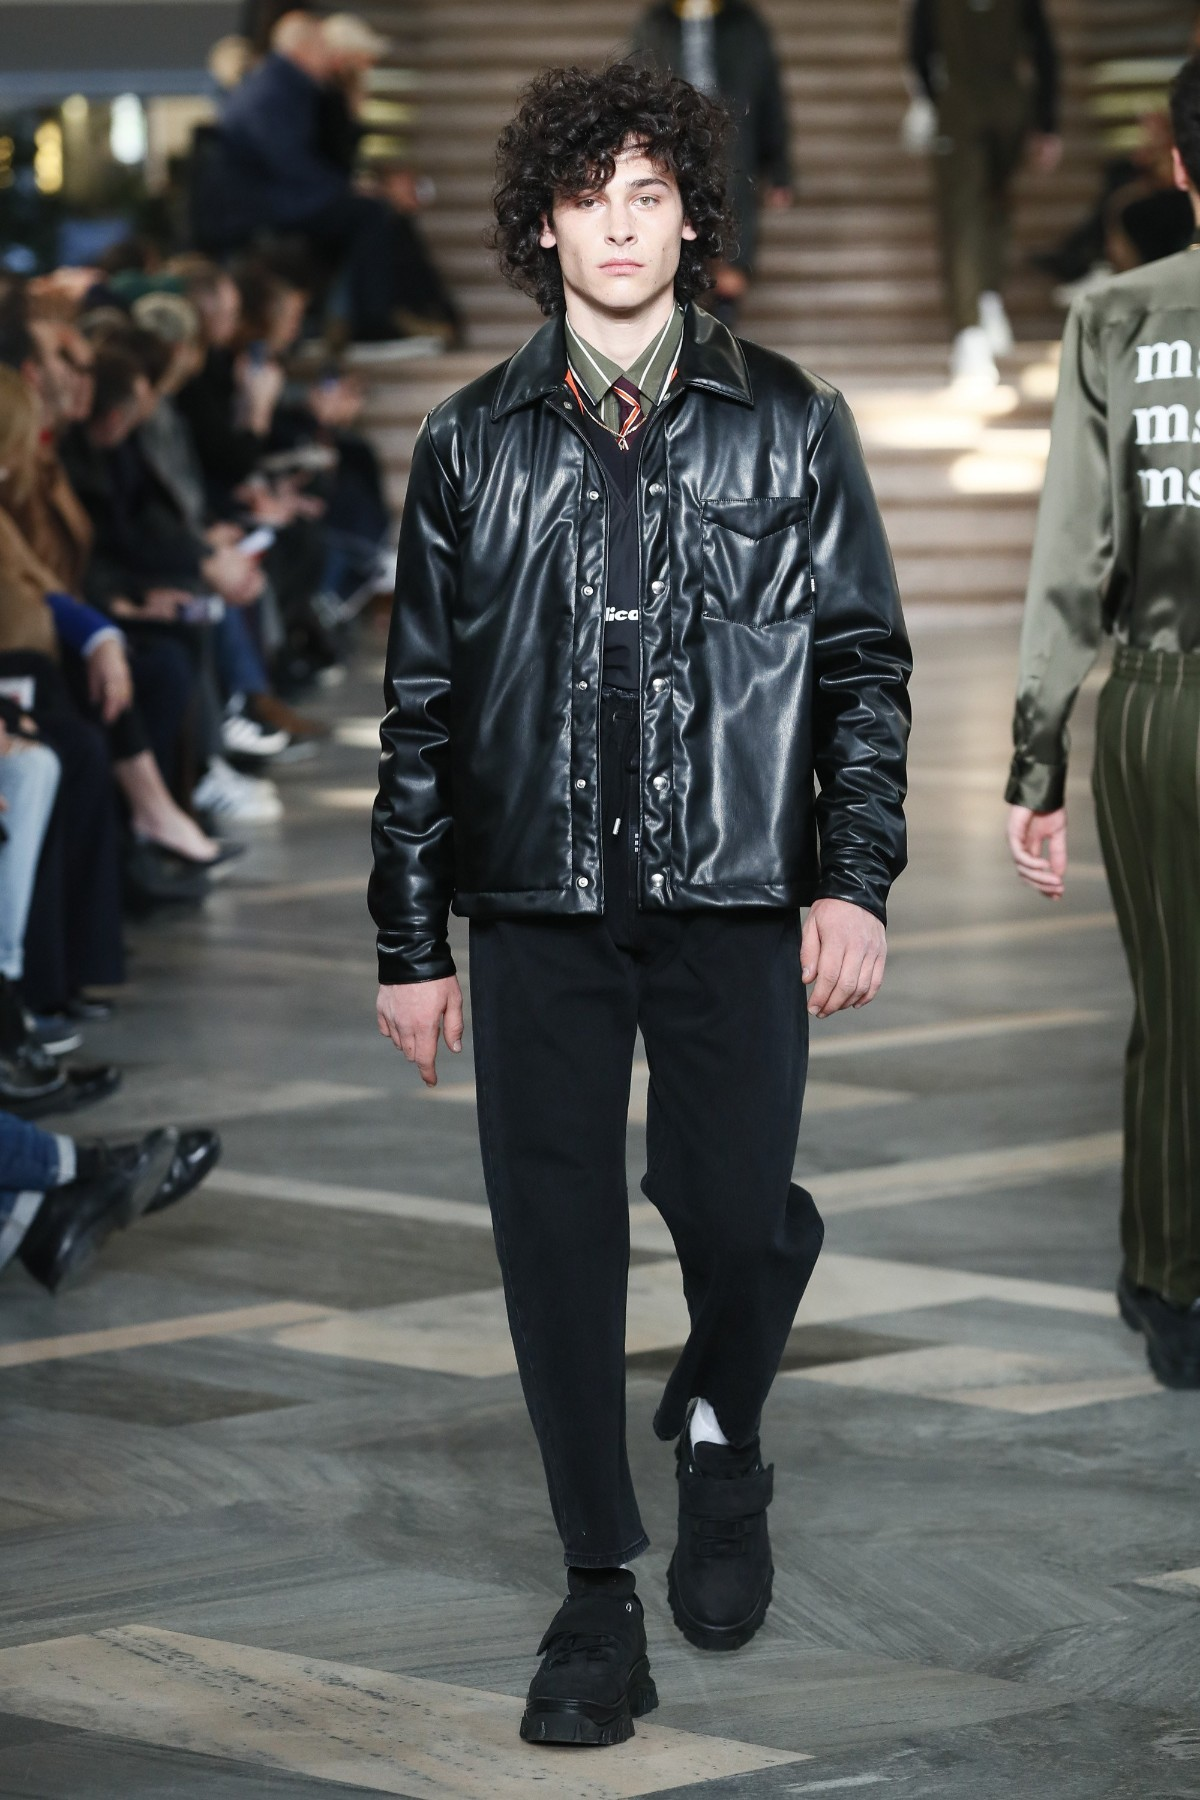 Men's Leather Jackets for Winter 2018 16